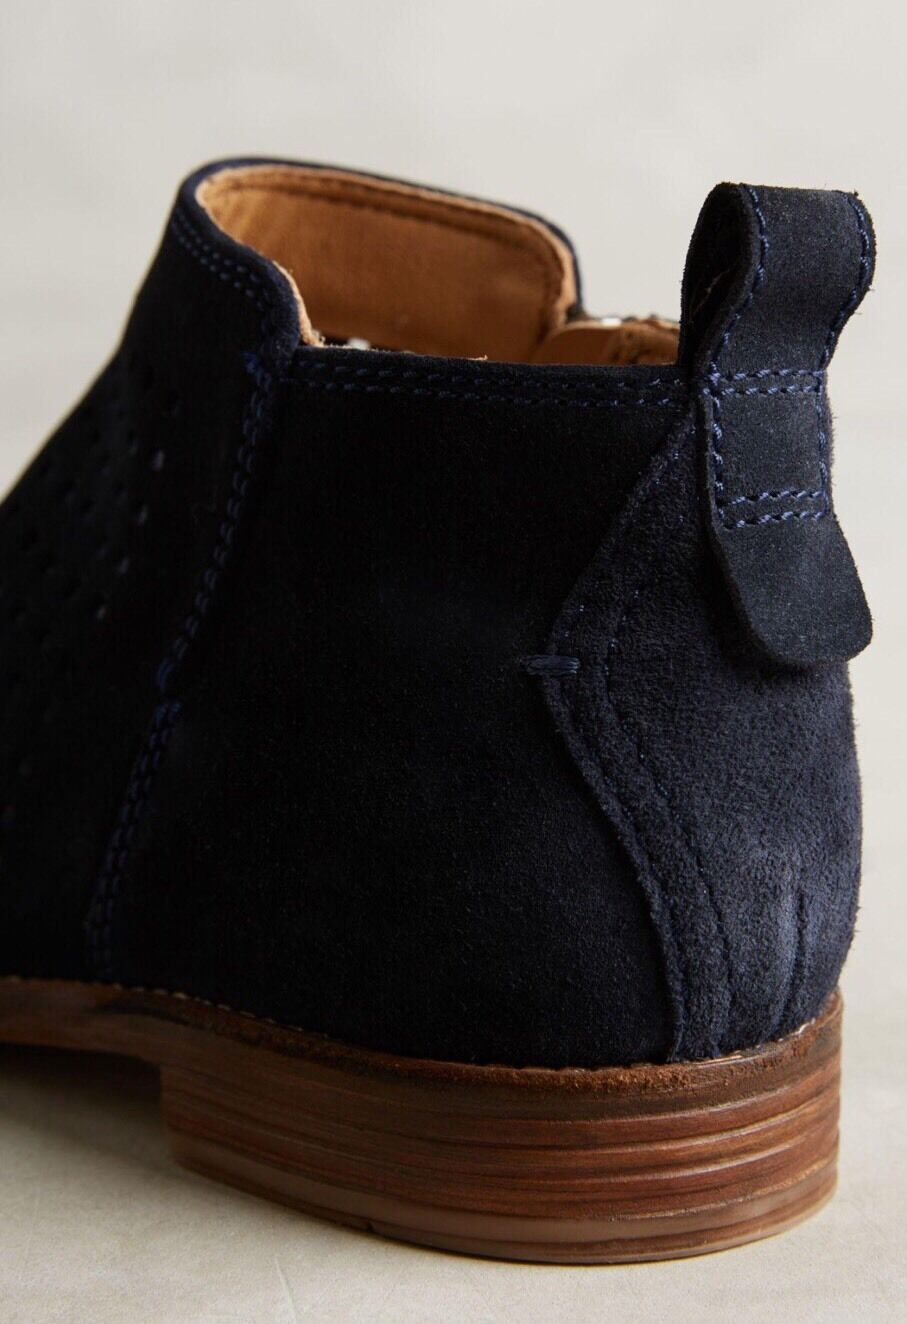 Nuevo anthropologie Hudson Hudson anthropologie Revelin Ante Azul Marino Tobillo botas Talla 38 H London f73fac